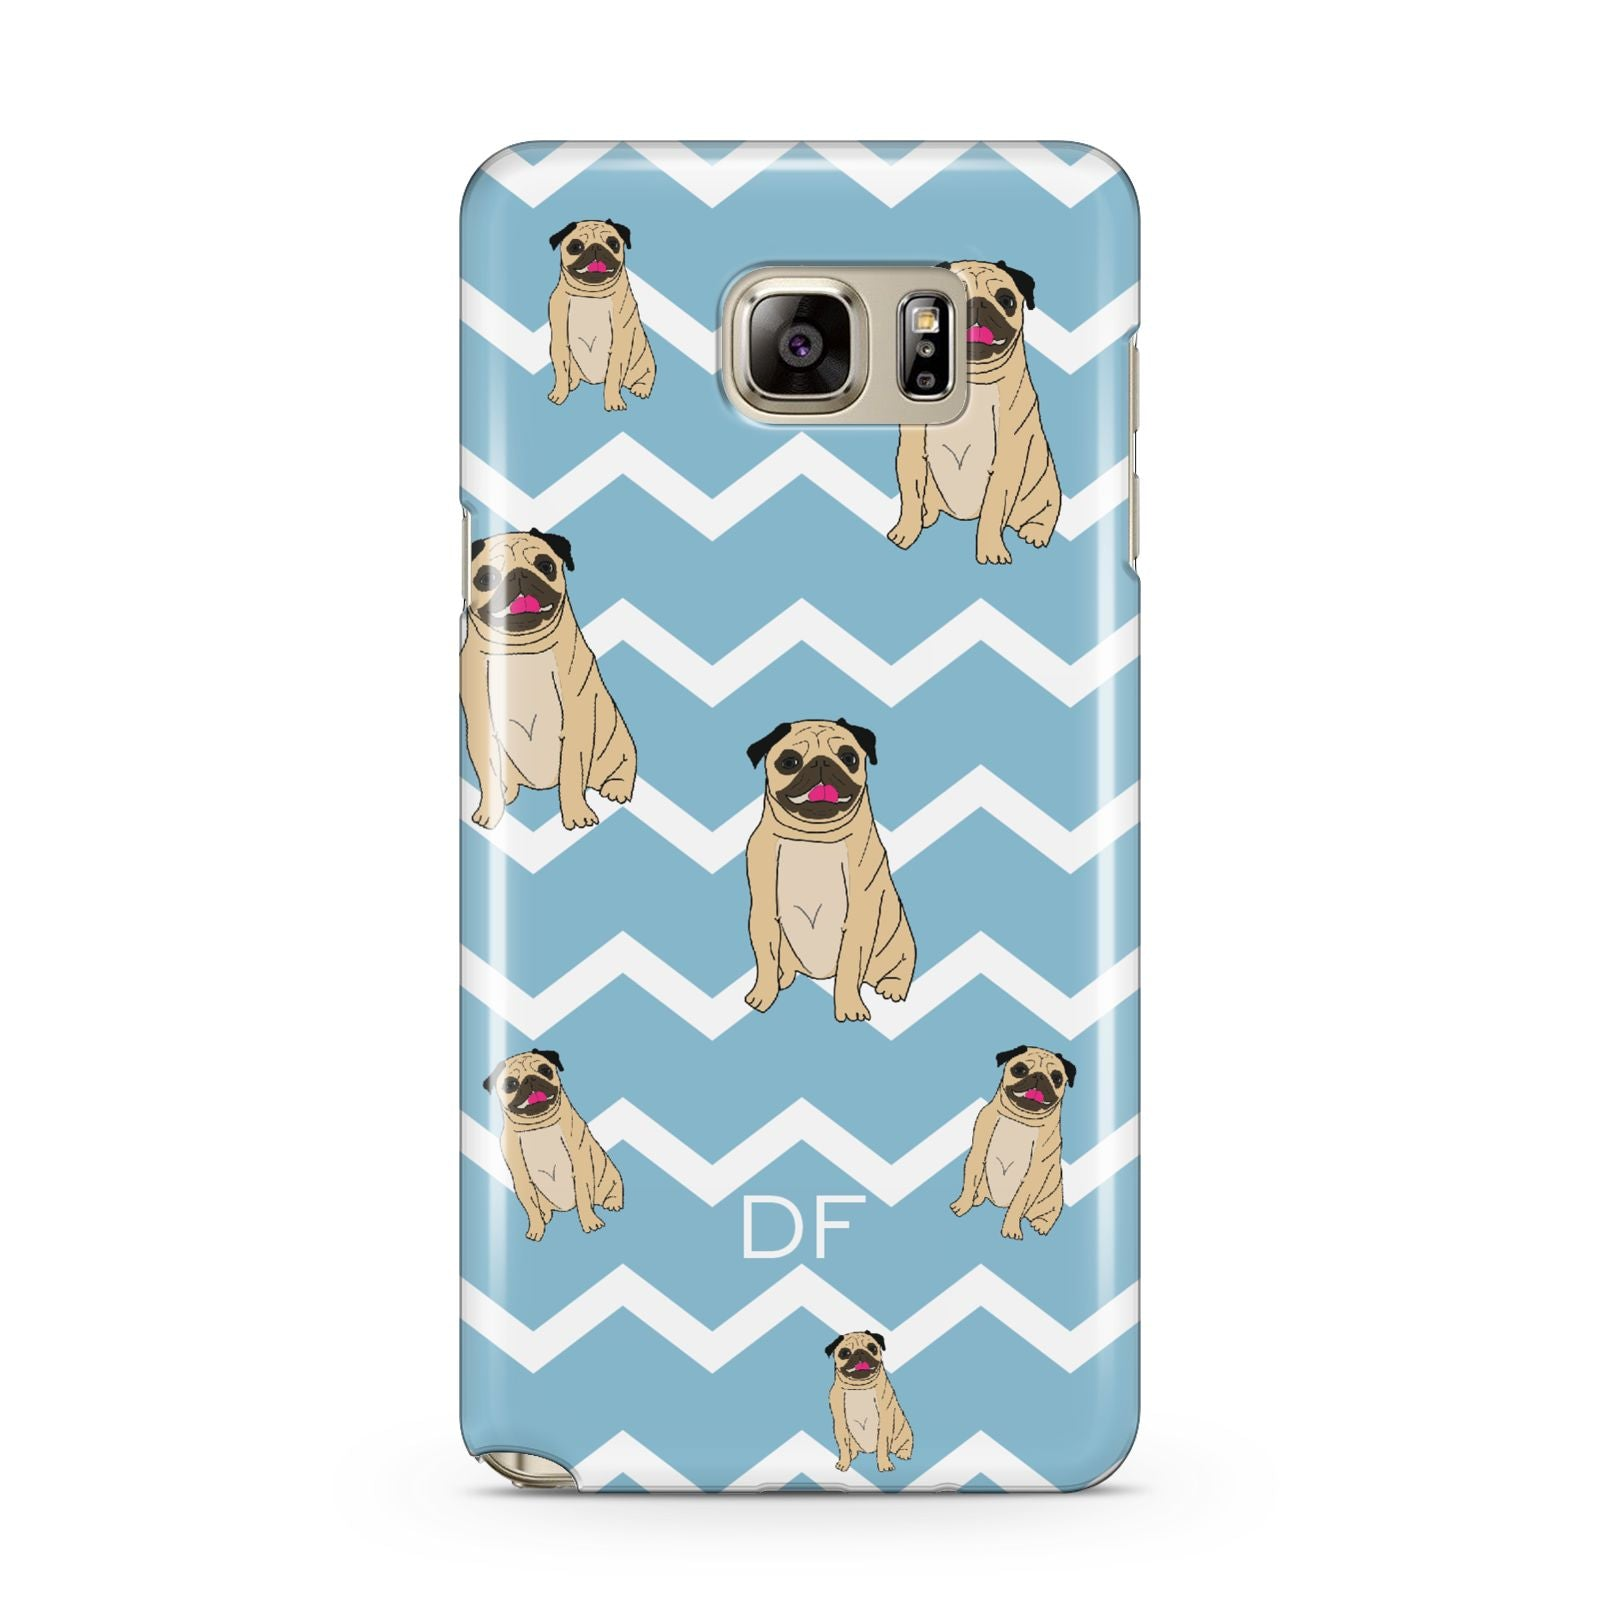 Personalised Pug Initials Samsung Galaxy Note 5 Case